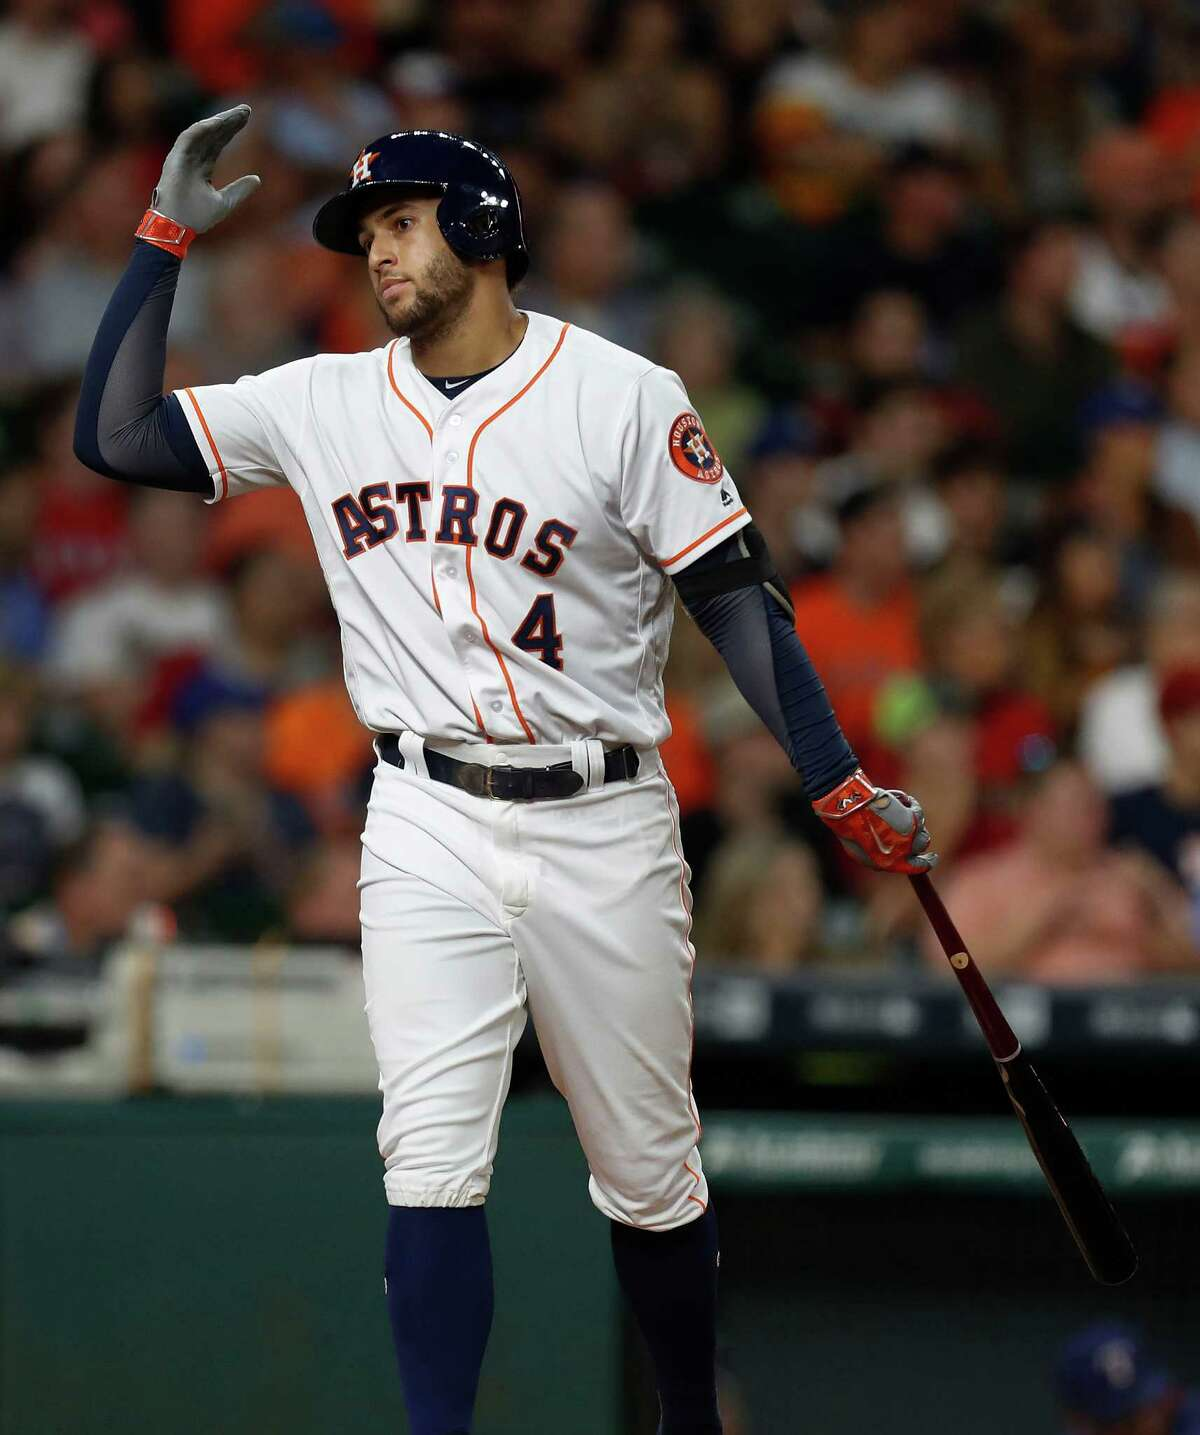 Sept 13: Rangers 3, Astros 2 Houston Astros right fielder George Springer (4) reacts after lining out to Texas Rangers third baseman Adrian Beltre during the third inning of an MLB game at Minute Maid Park, Monday, Sept. 12, 2016 in Houston.